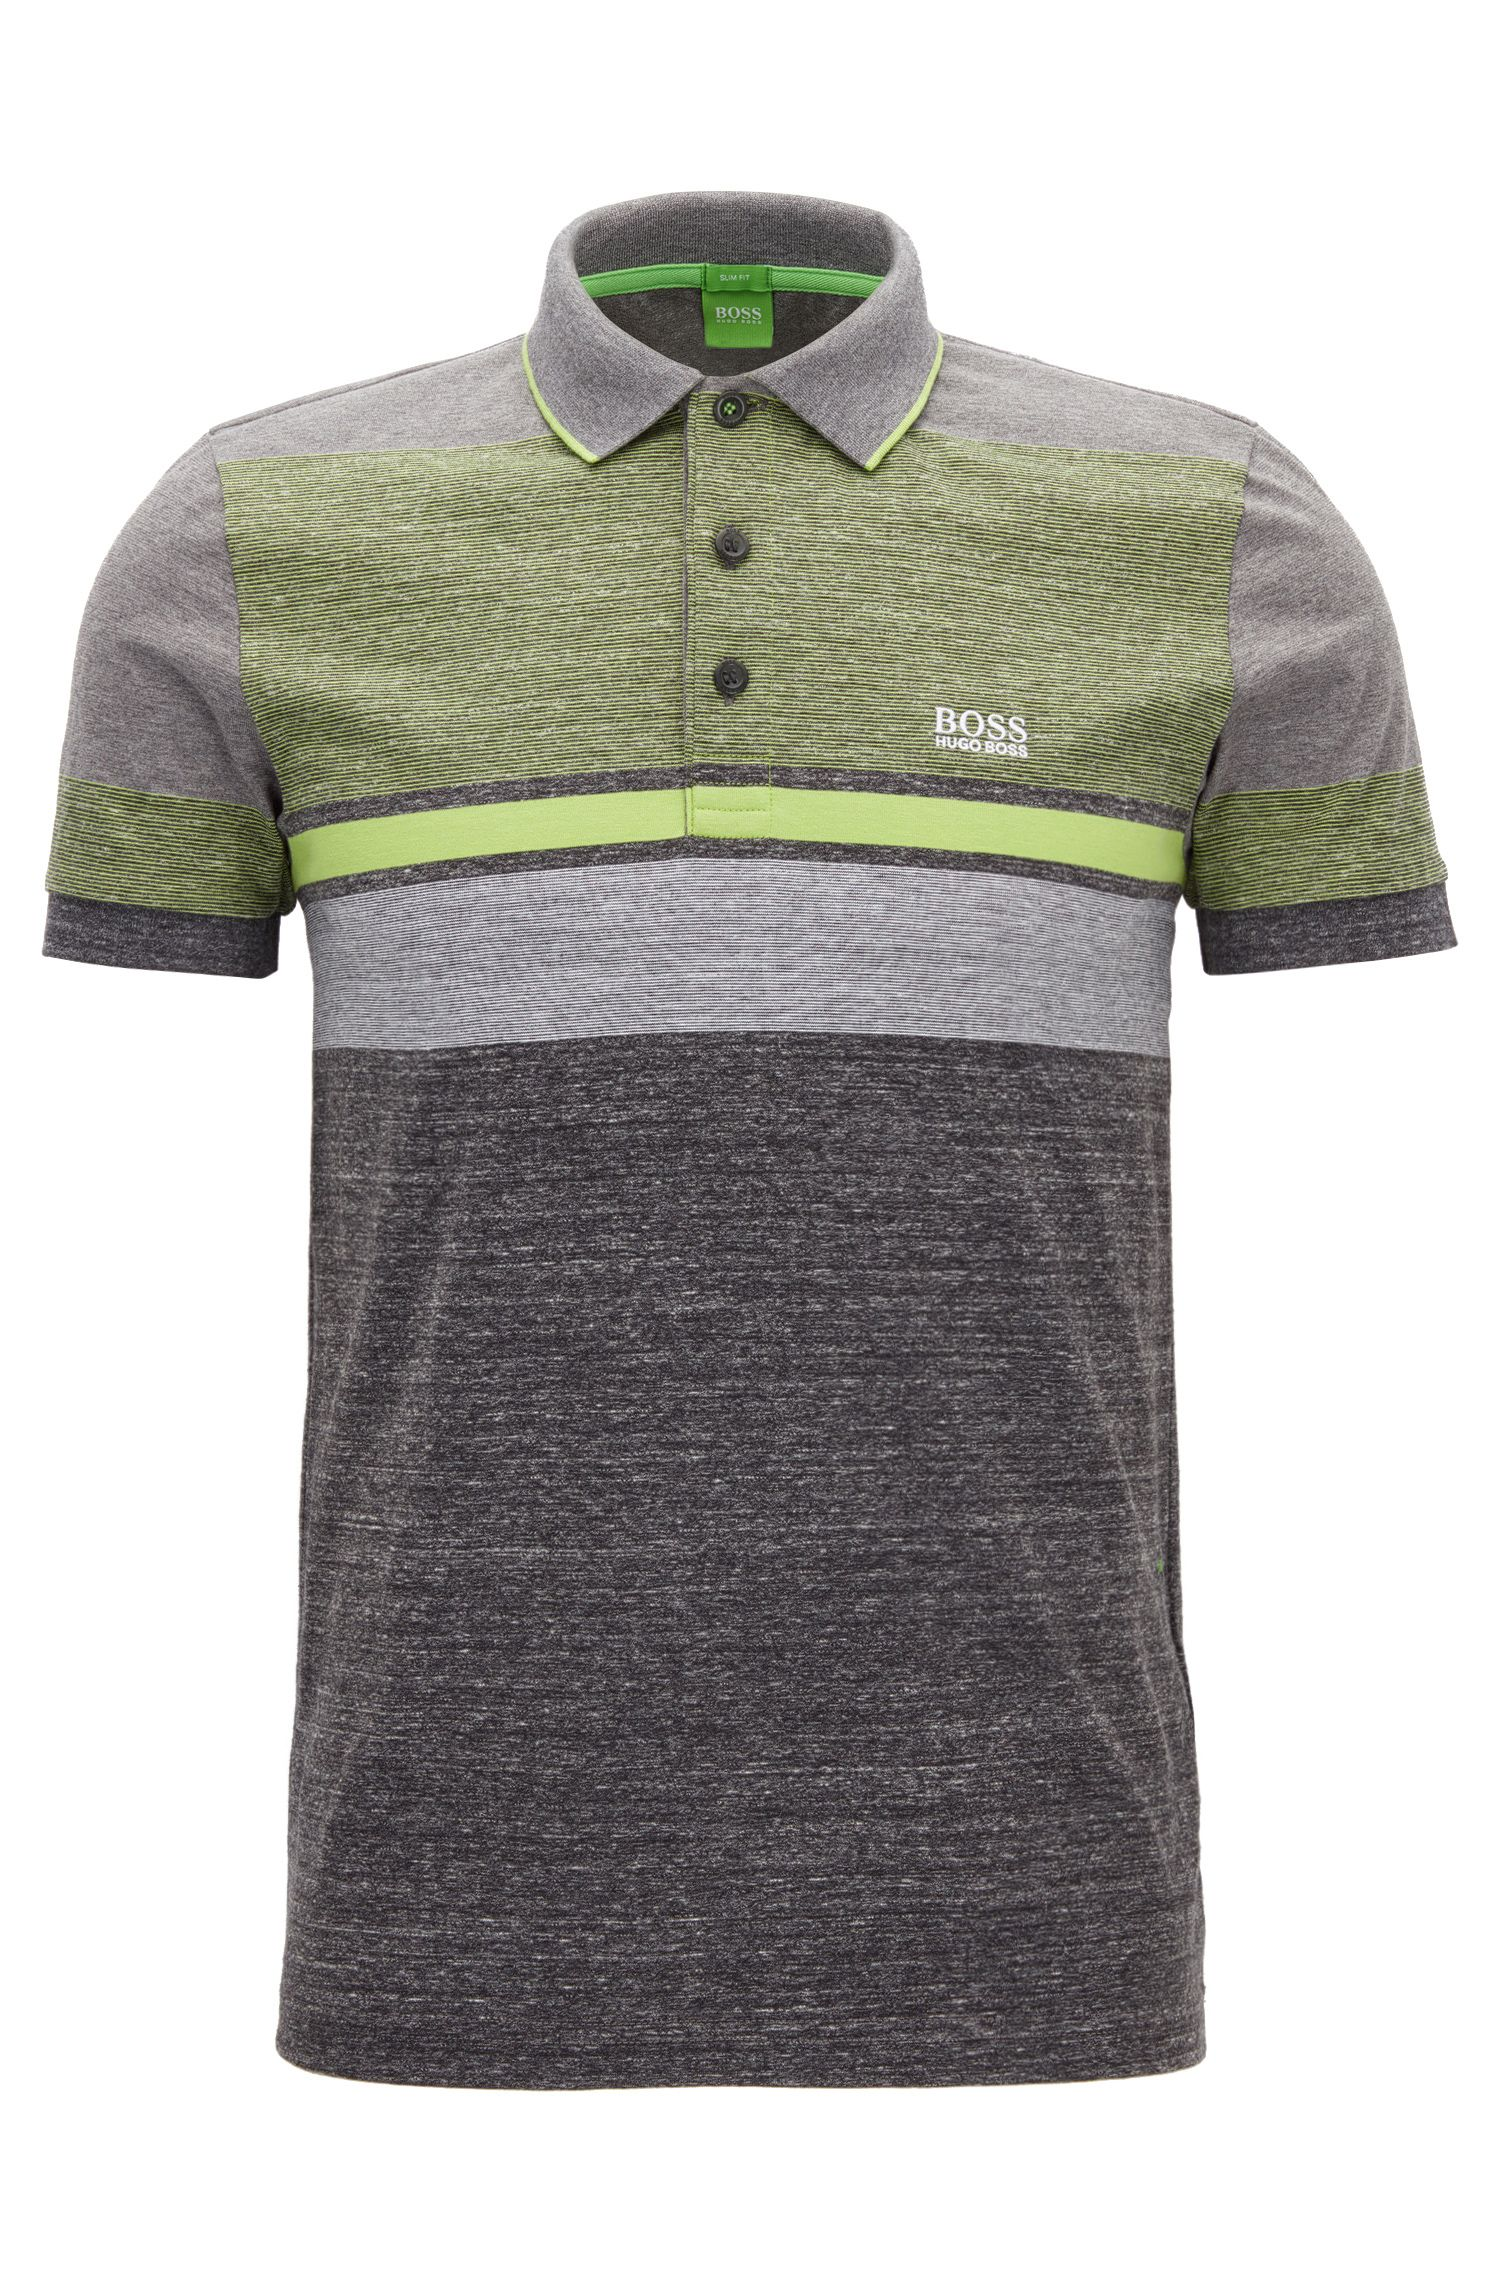 Colour-block heather-stripe cotton jersey polo shirt in a slim fit